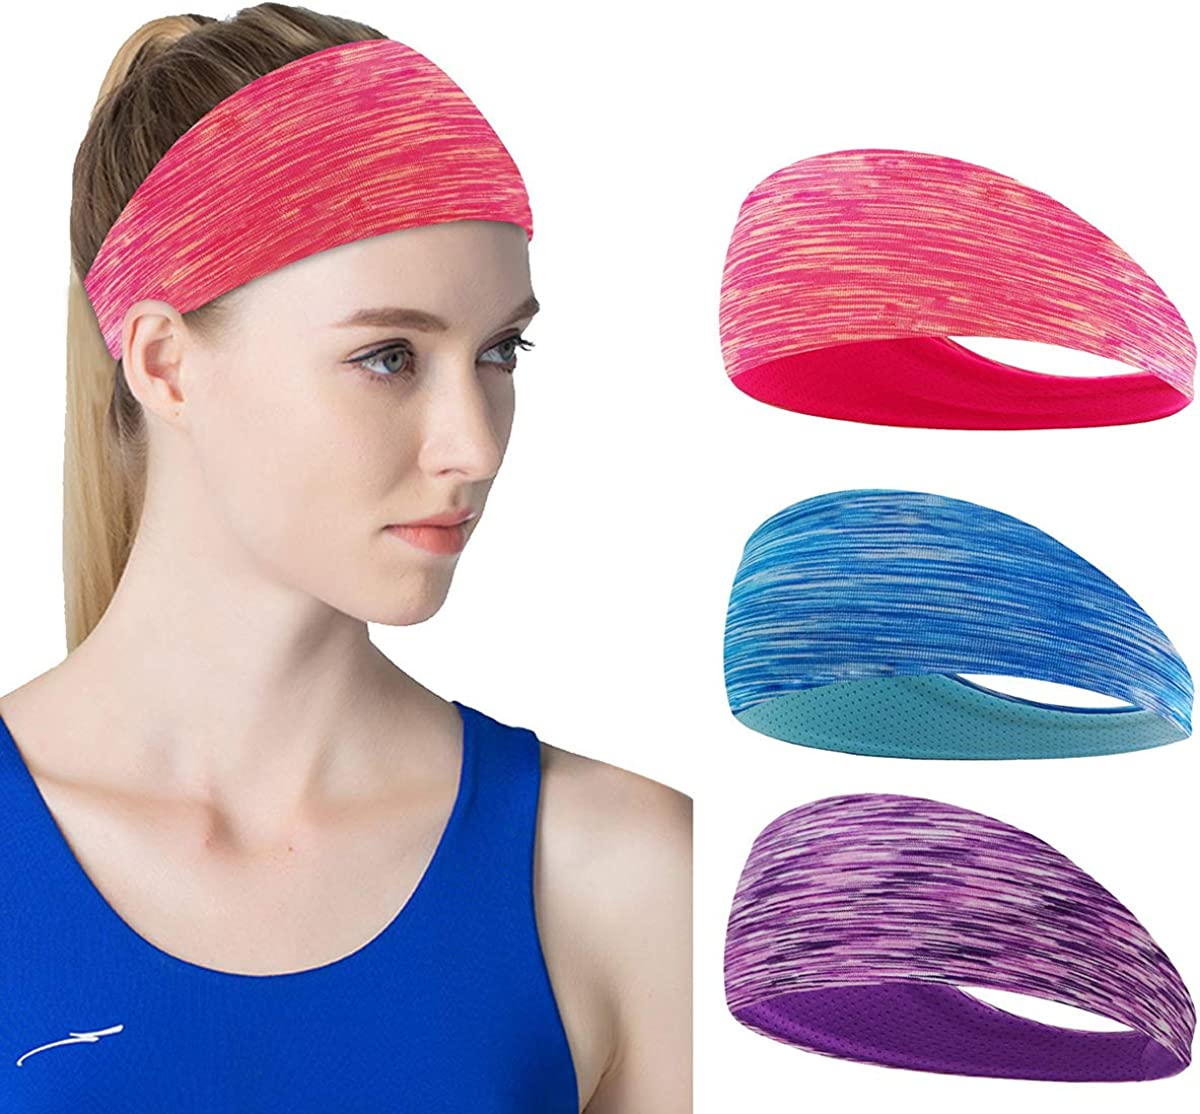 Kapsuen 3 Pack Workout Headbands for Women-Sweat Wicking Hair Bands for Sports Yoga Fitness Running Elastic -Non Slip and Under Helmets